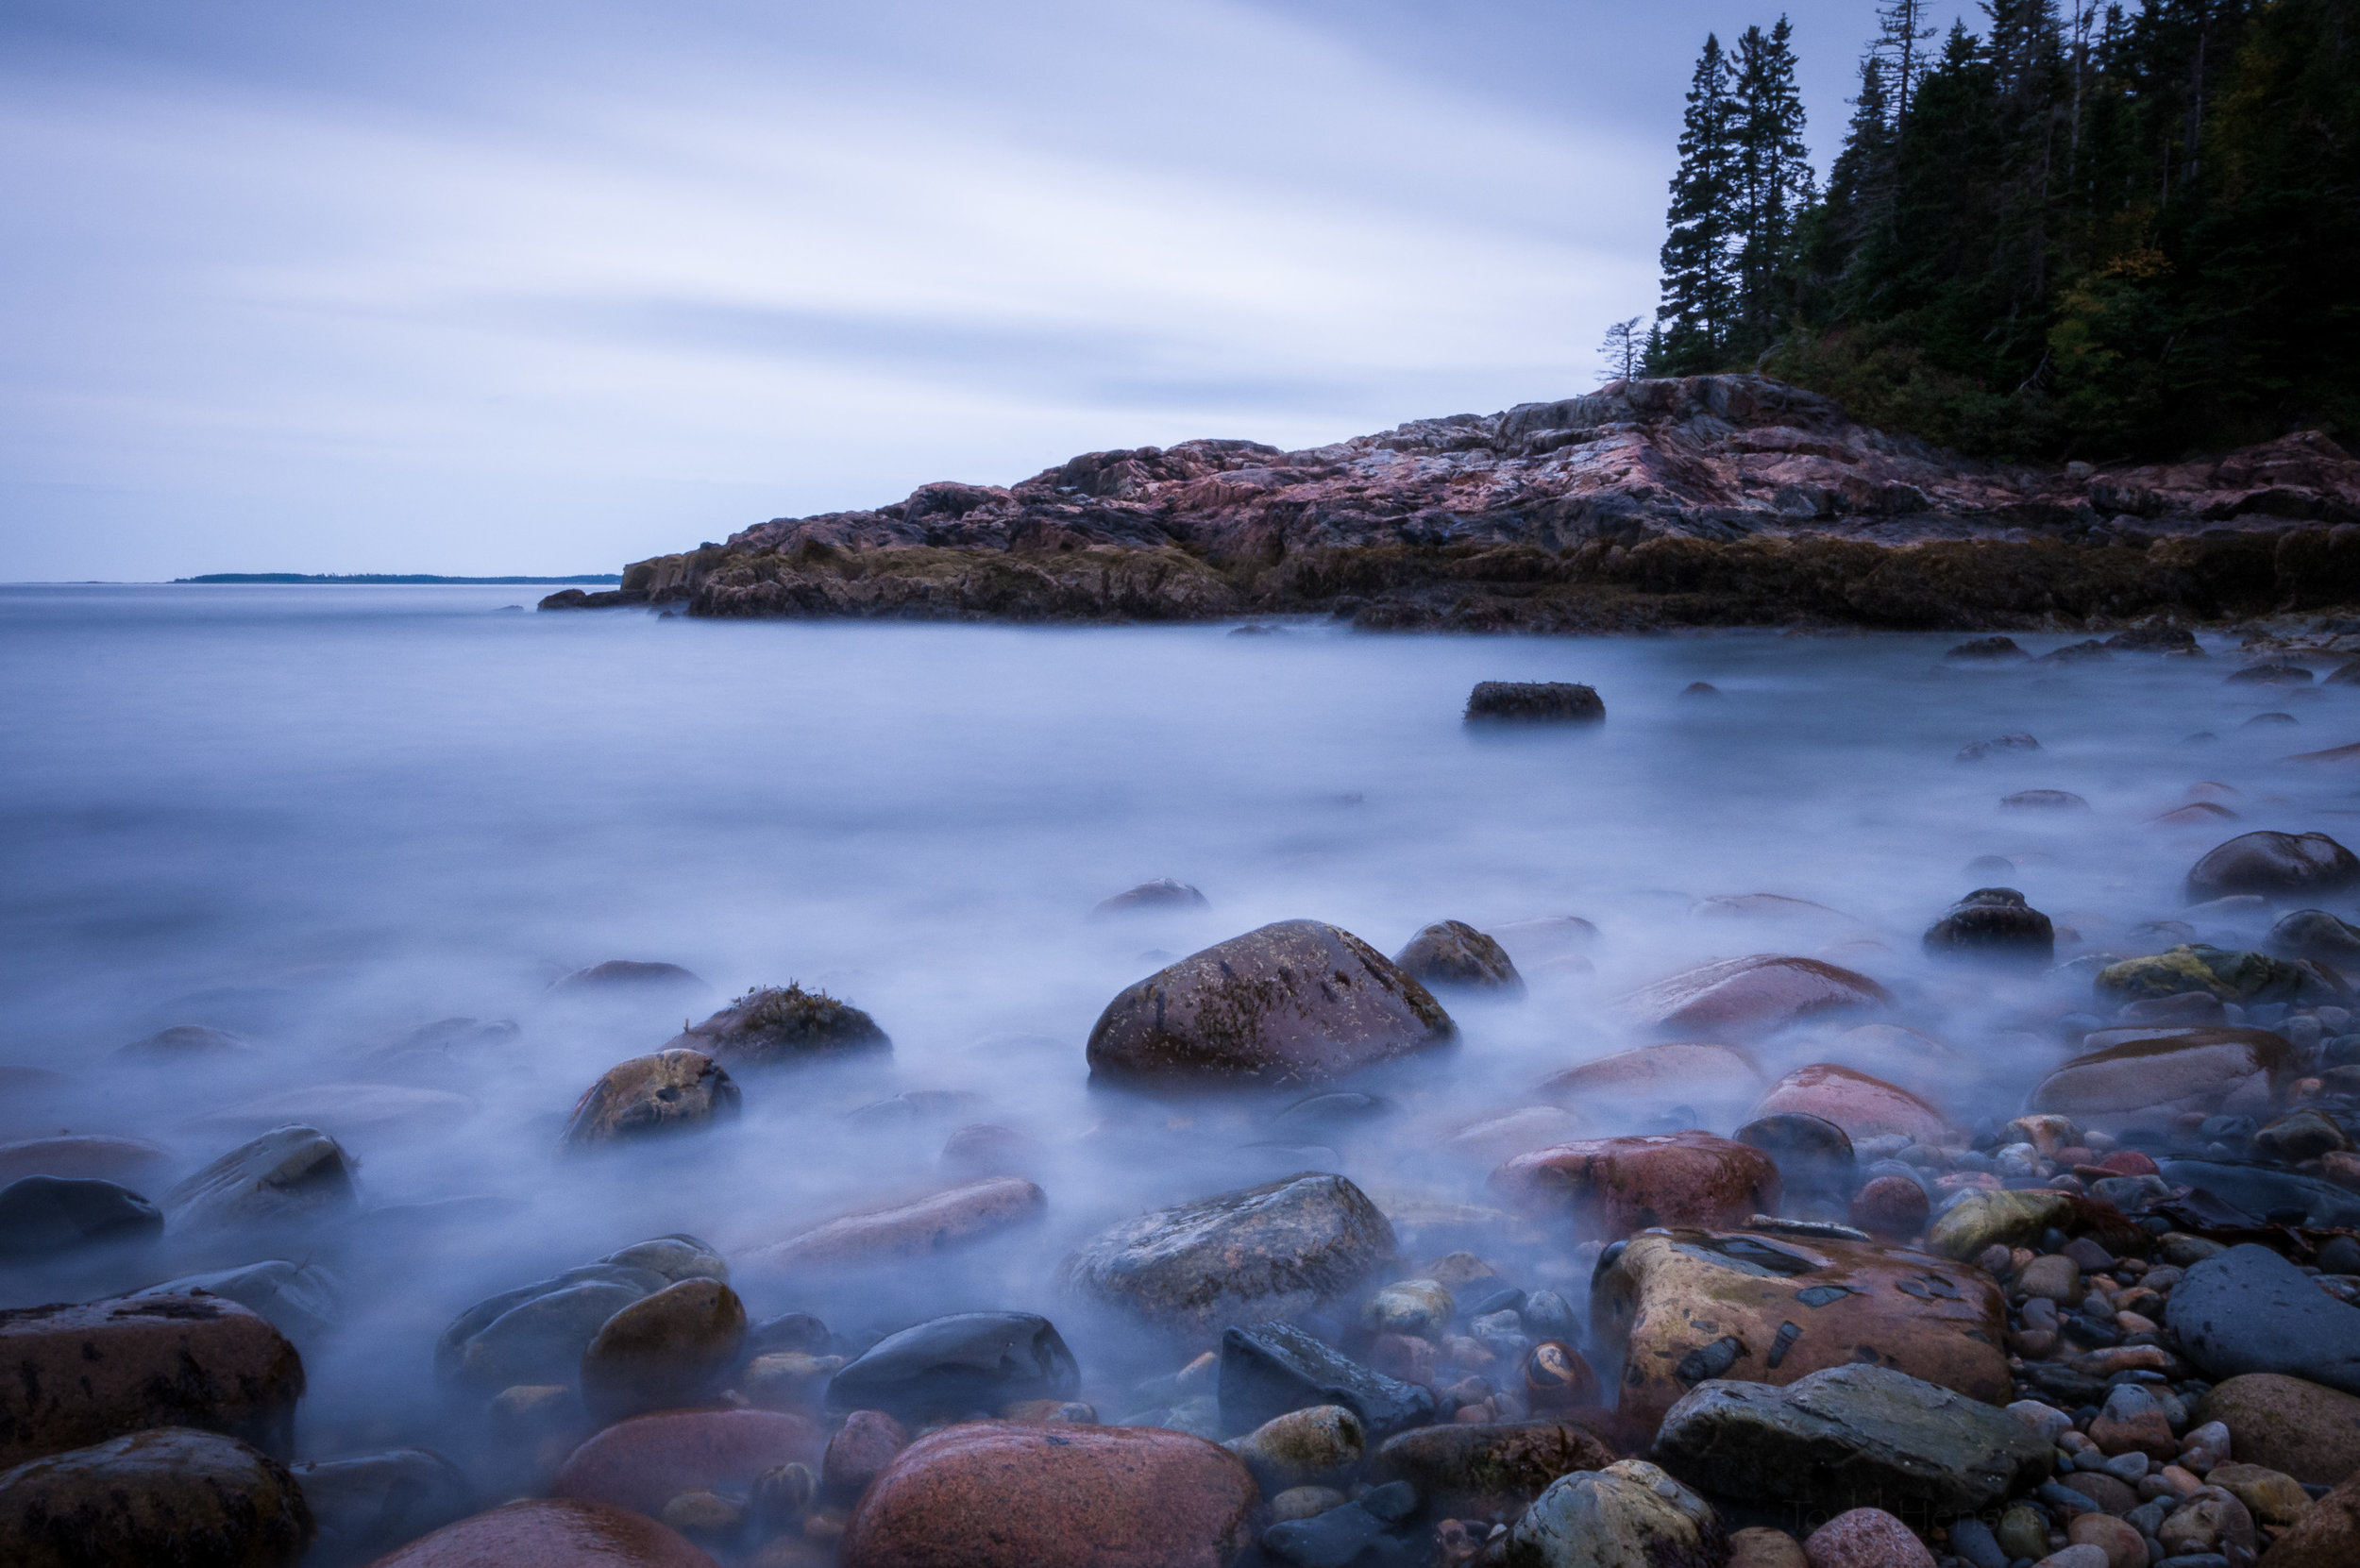 Long exposure of a rocky shoreline in Acadia National Park, Maine (cooler tones)